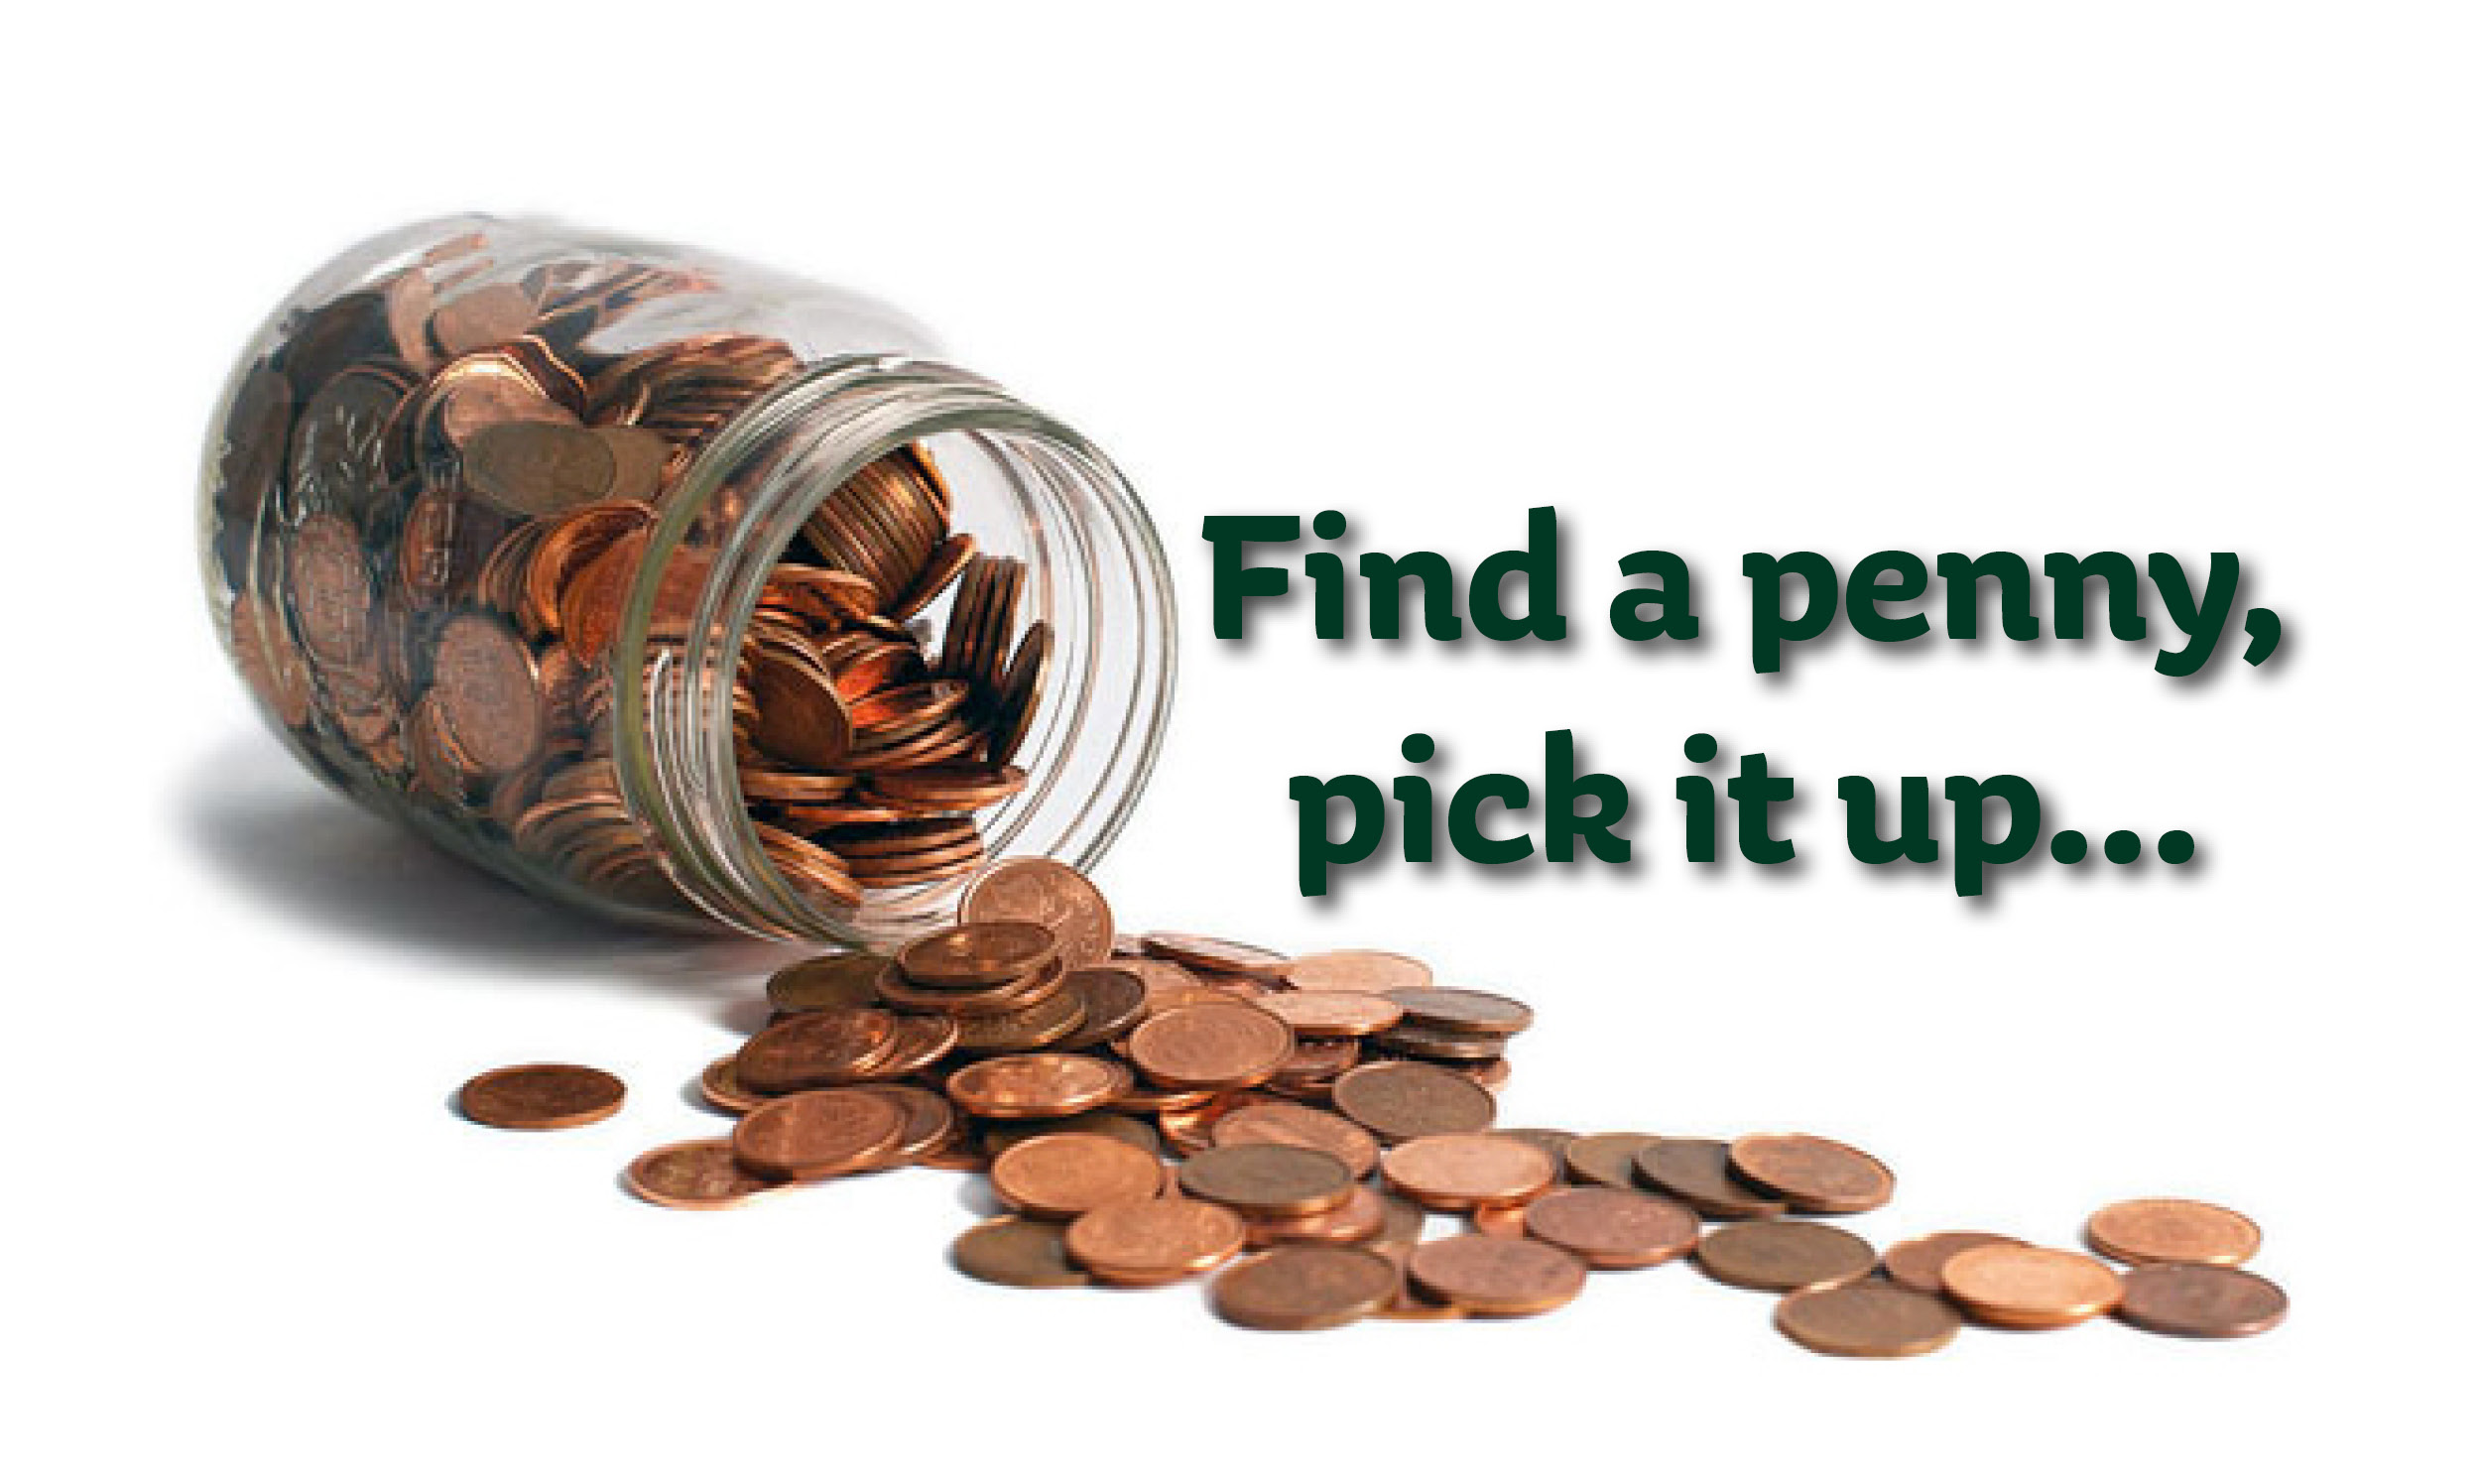 Find a penny, pick it up!